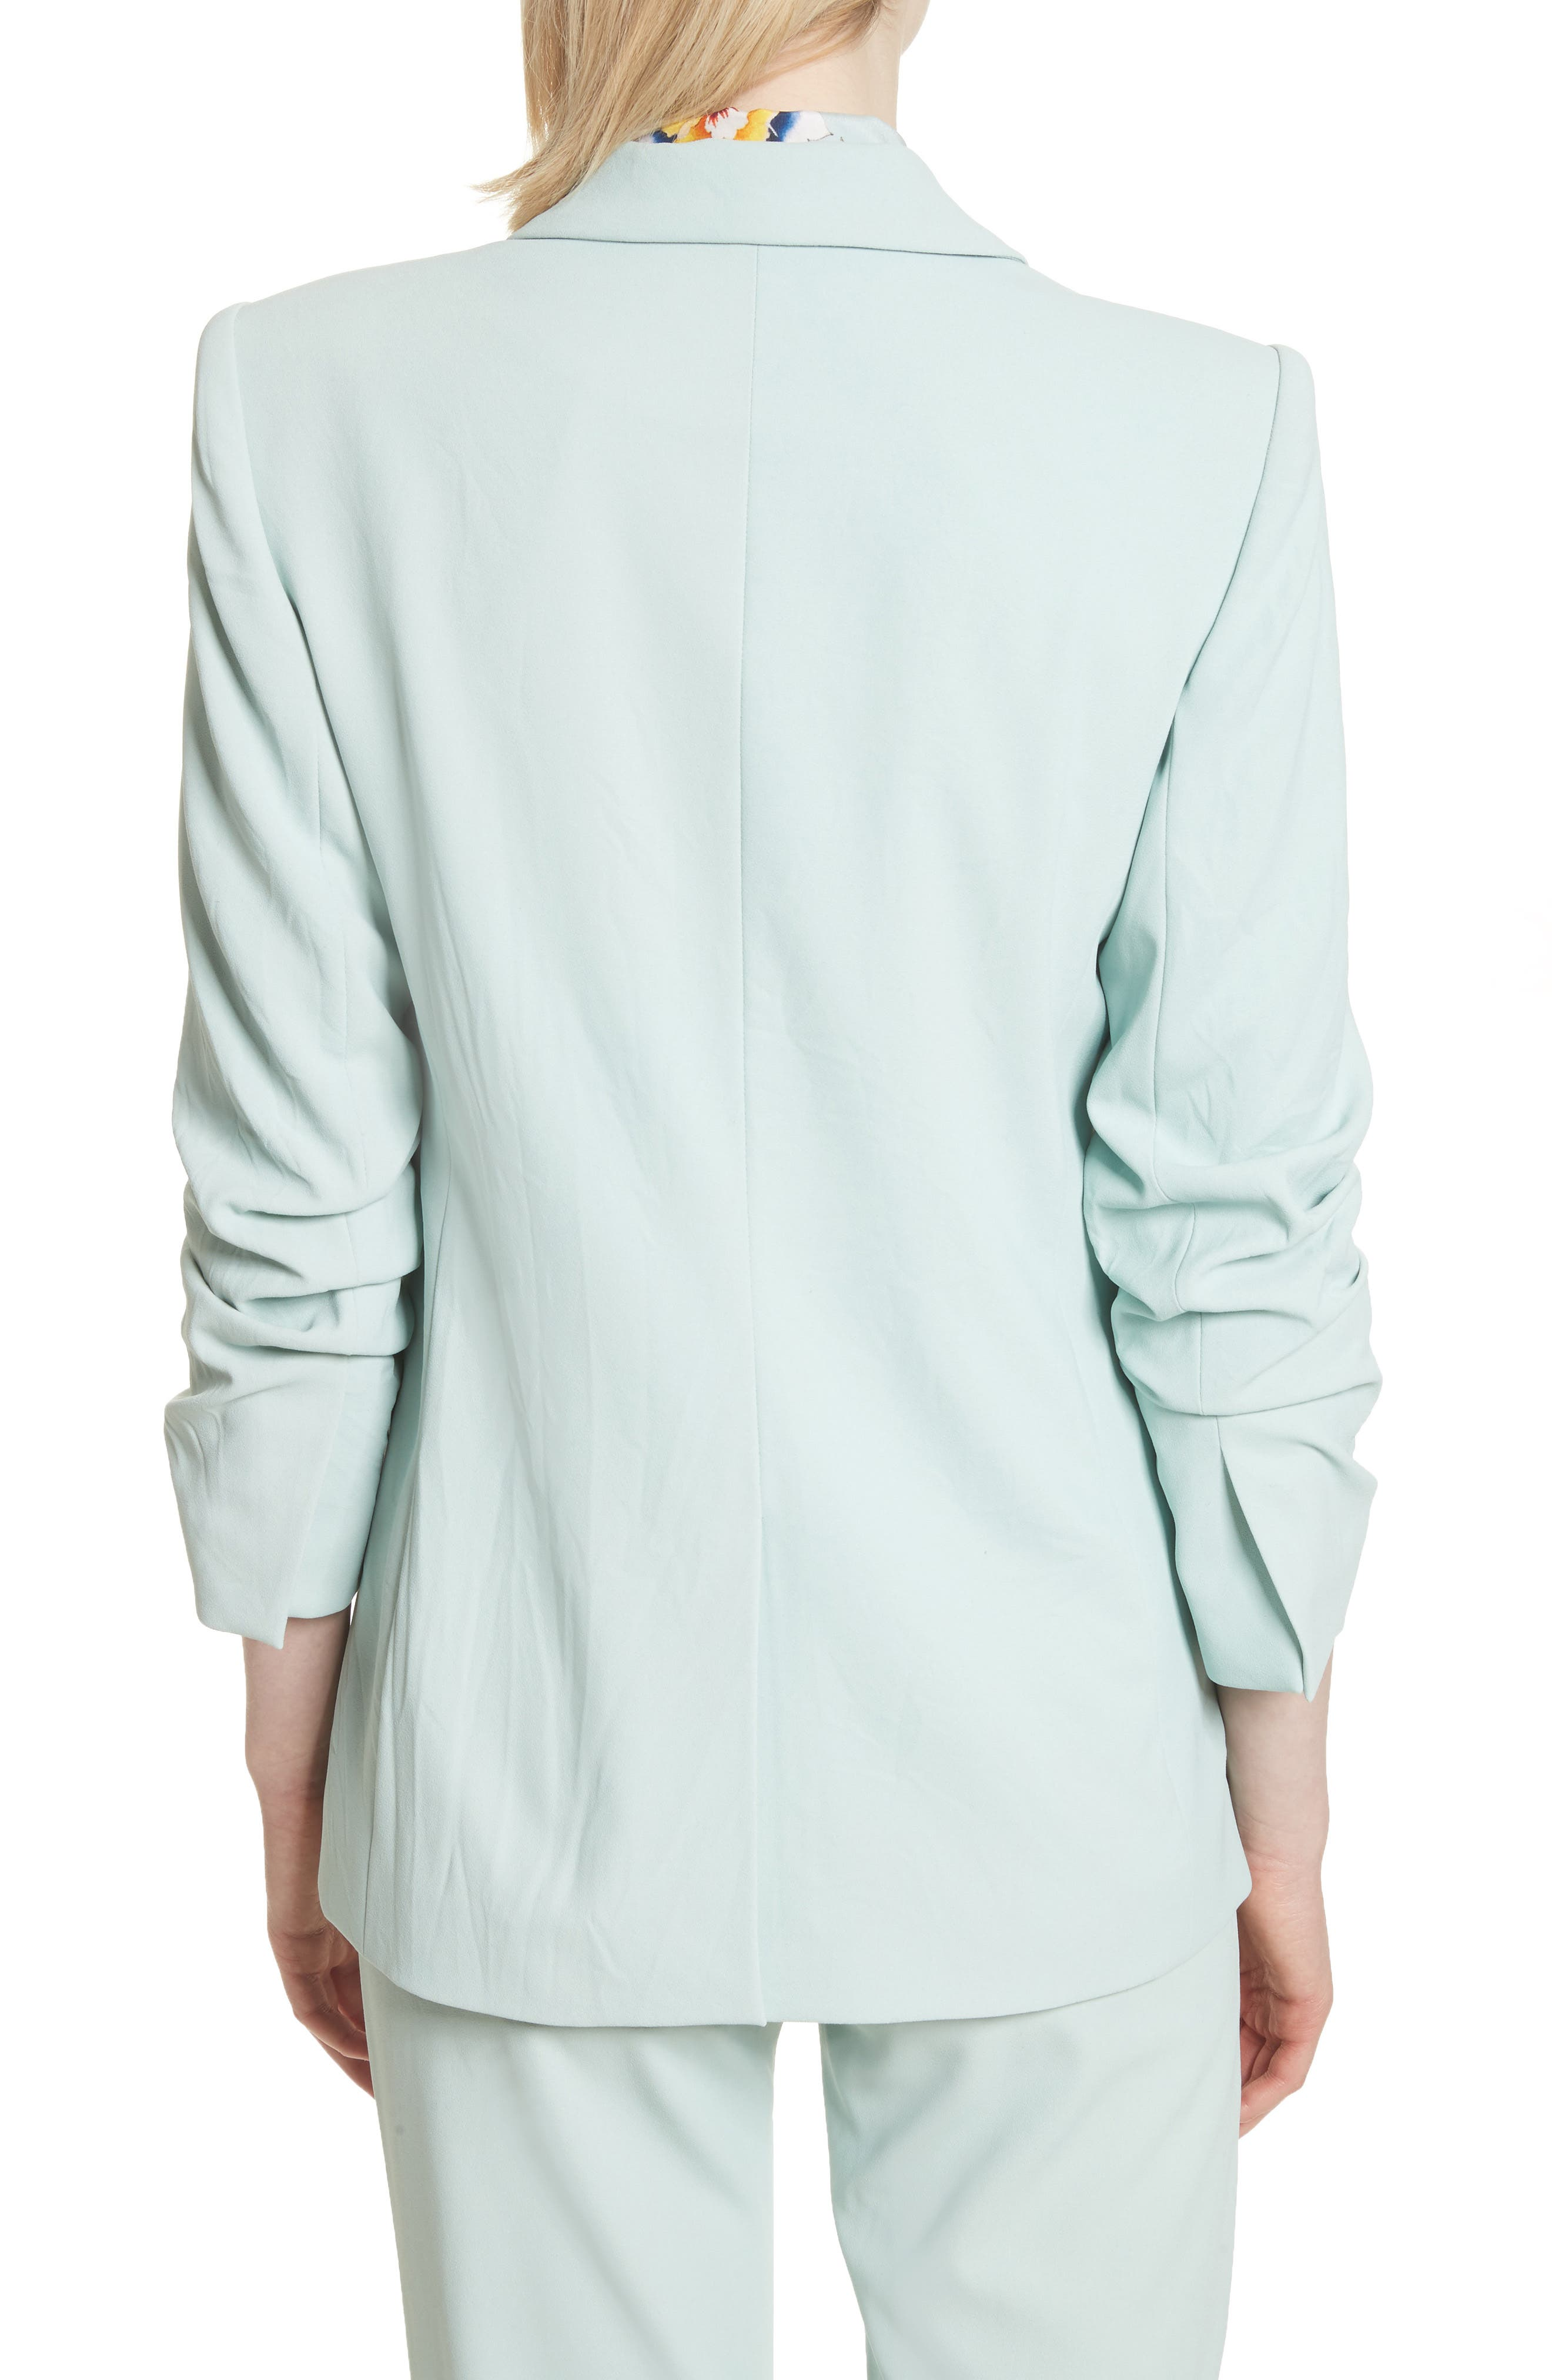 Ruched Sleeve Blazer,                             Alternate thumbnail 2, color,                             Light Dusty Aqua